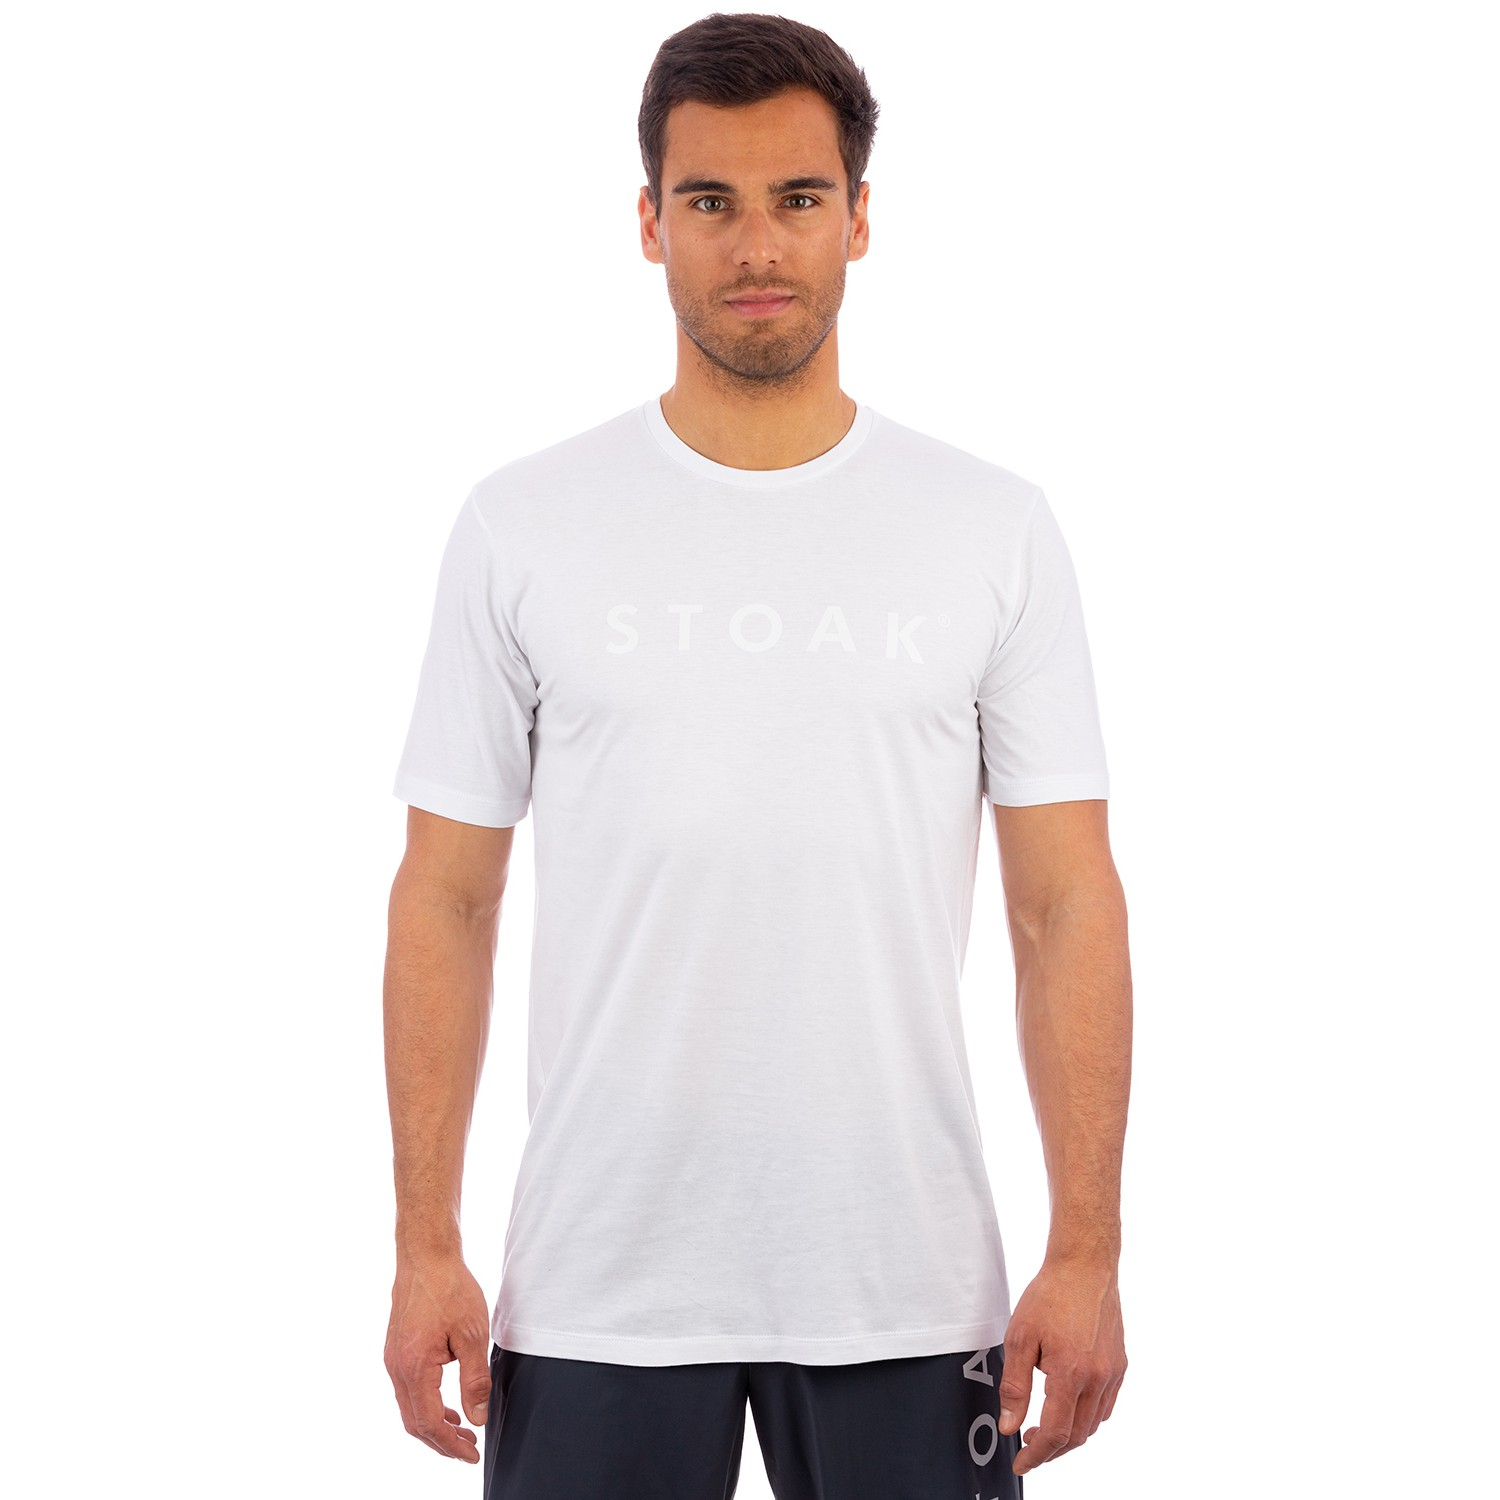 STOAK DOUBLE DIAMOND T-Shirt